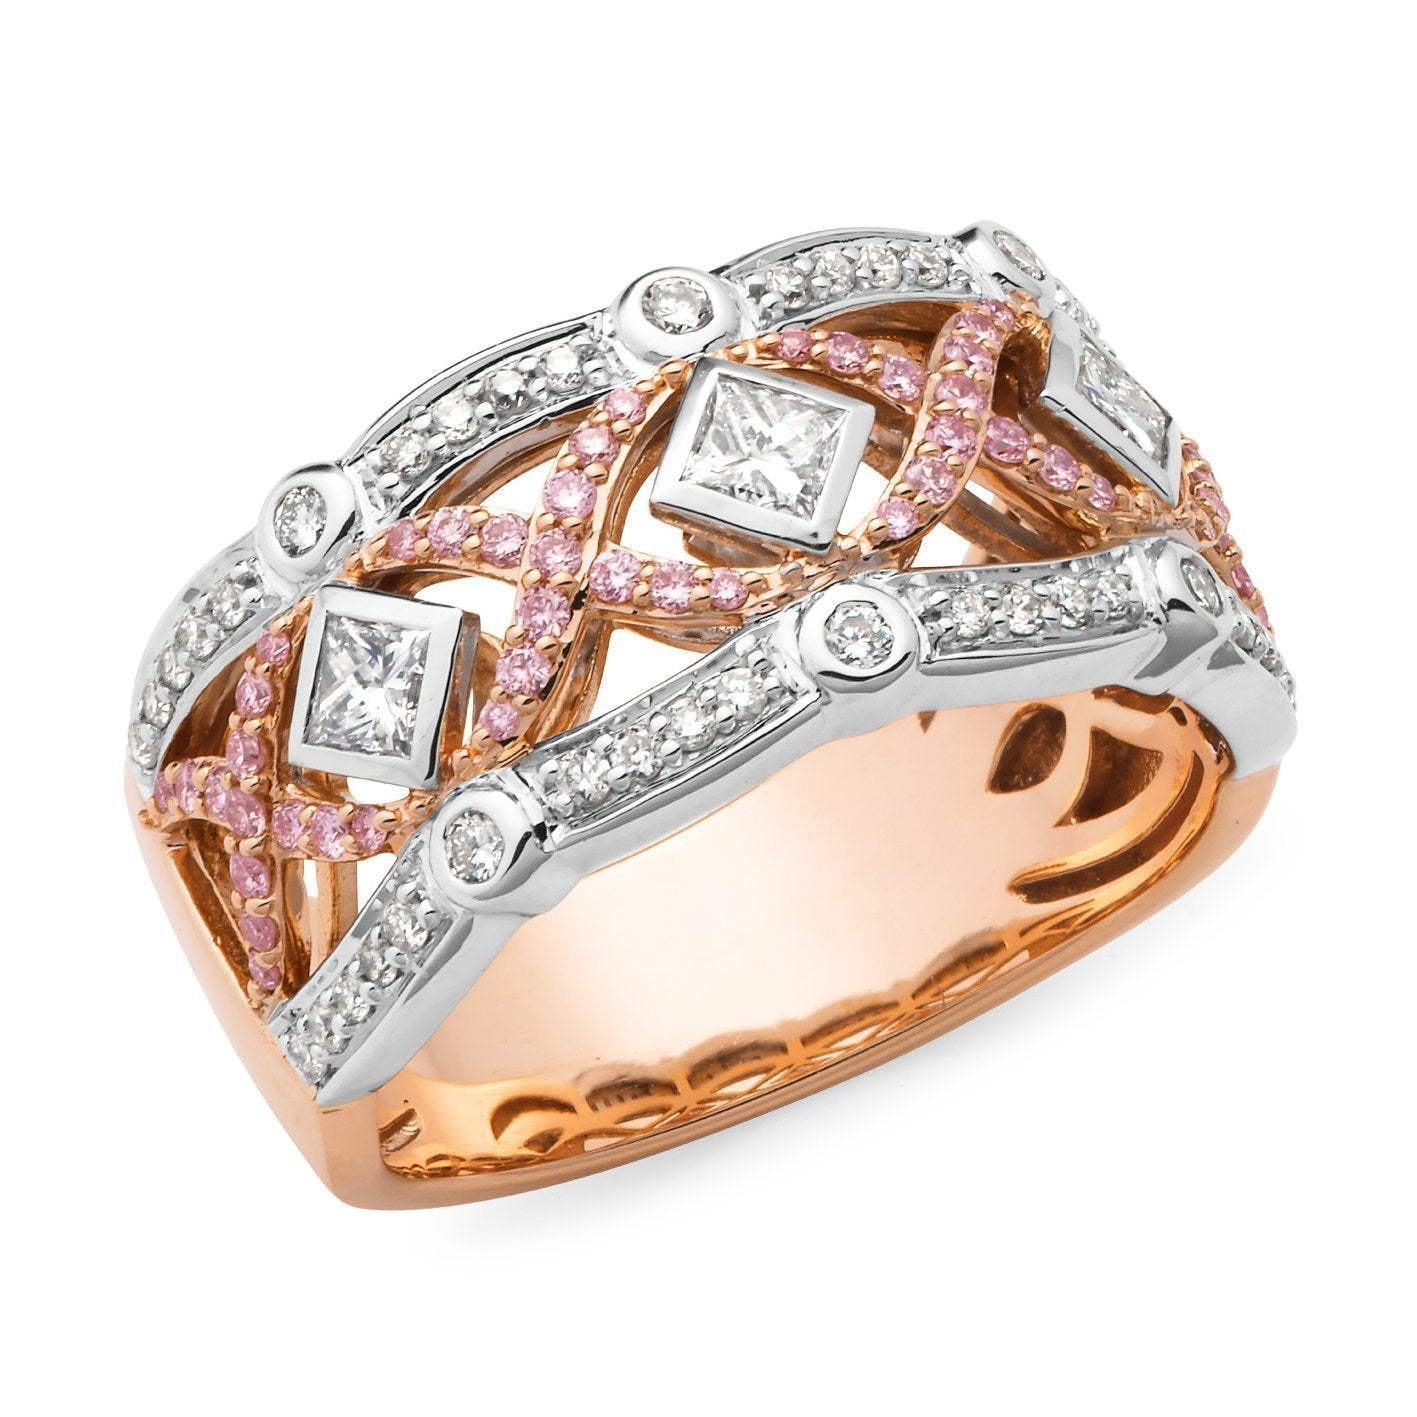 PINK CAVIAR 0.83ct Pink Diamond Ring in 9ct Rose & White Gold